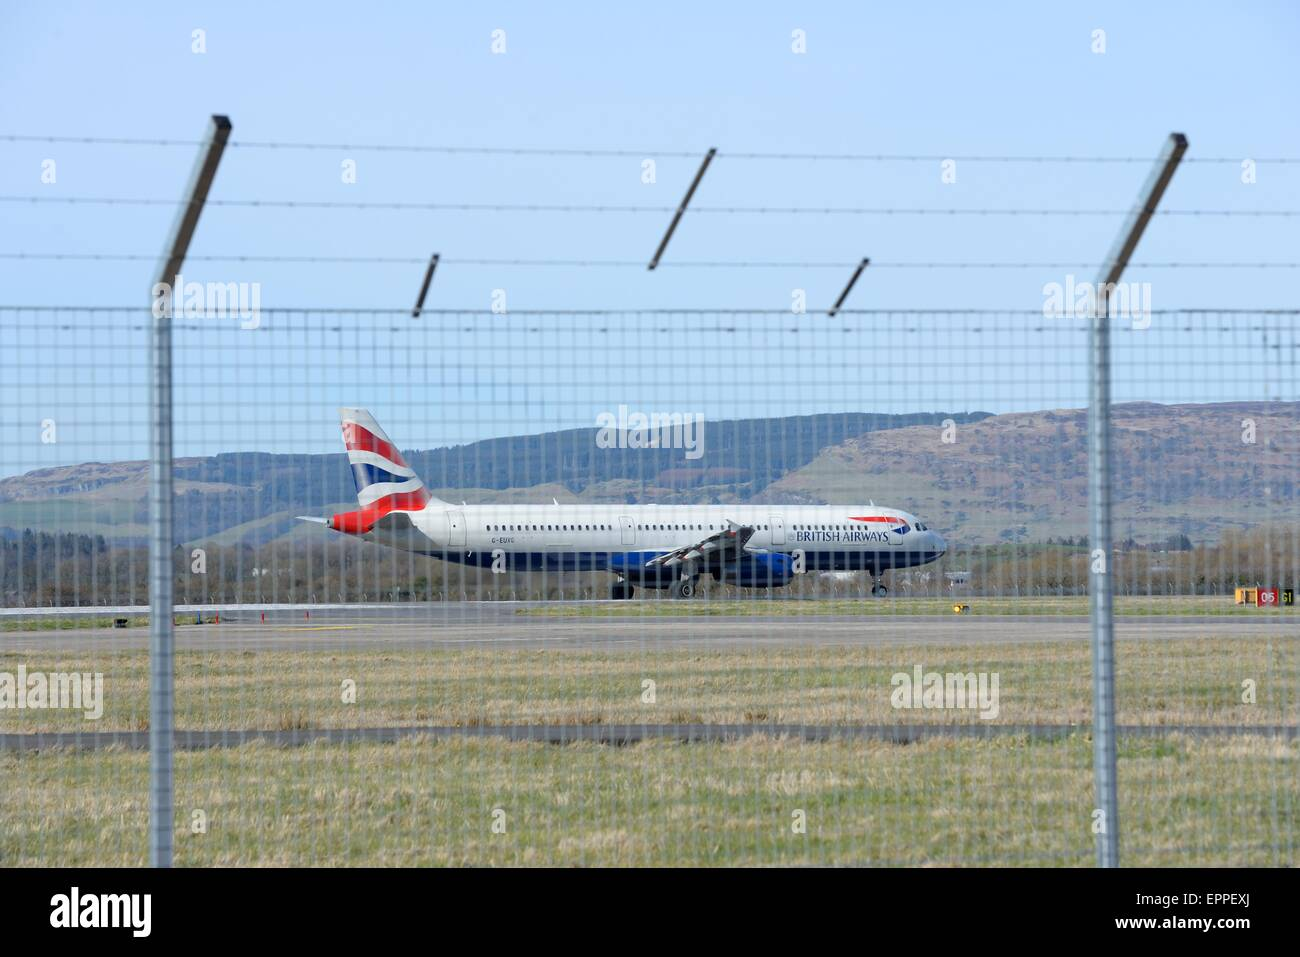 A British Airways plane prepares for take off viewed from behind security fence at Glasgow International airport, - Stock Image